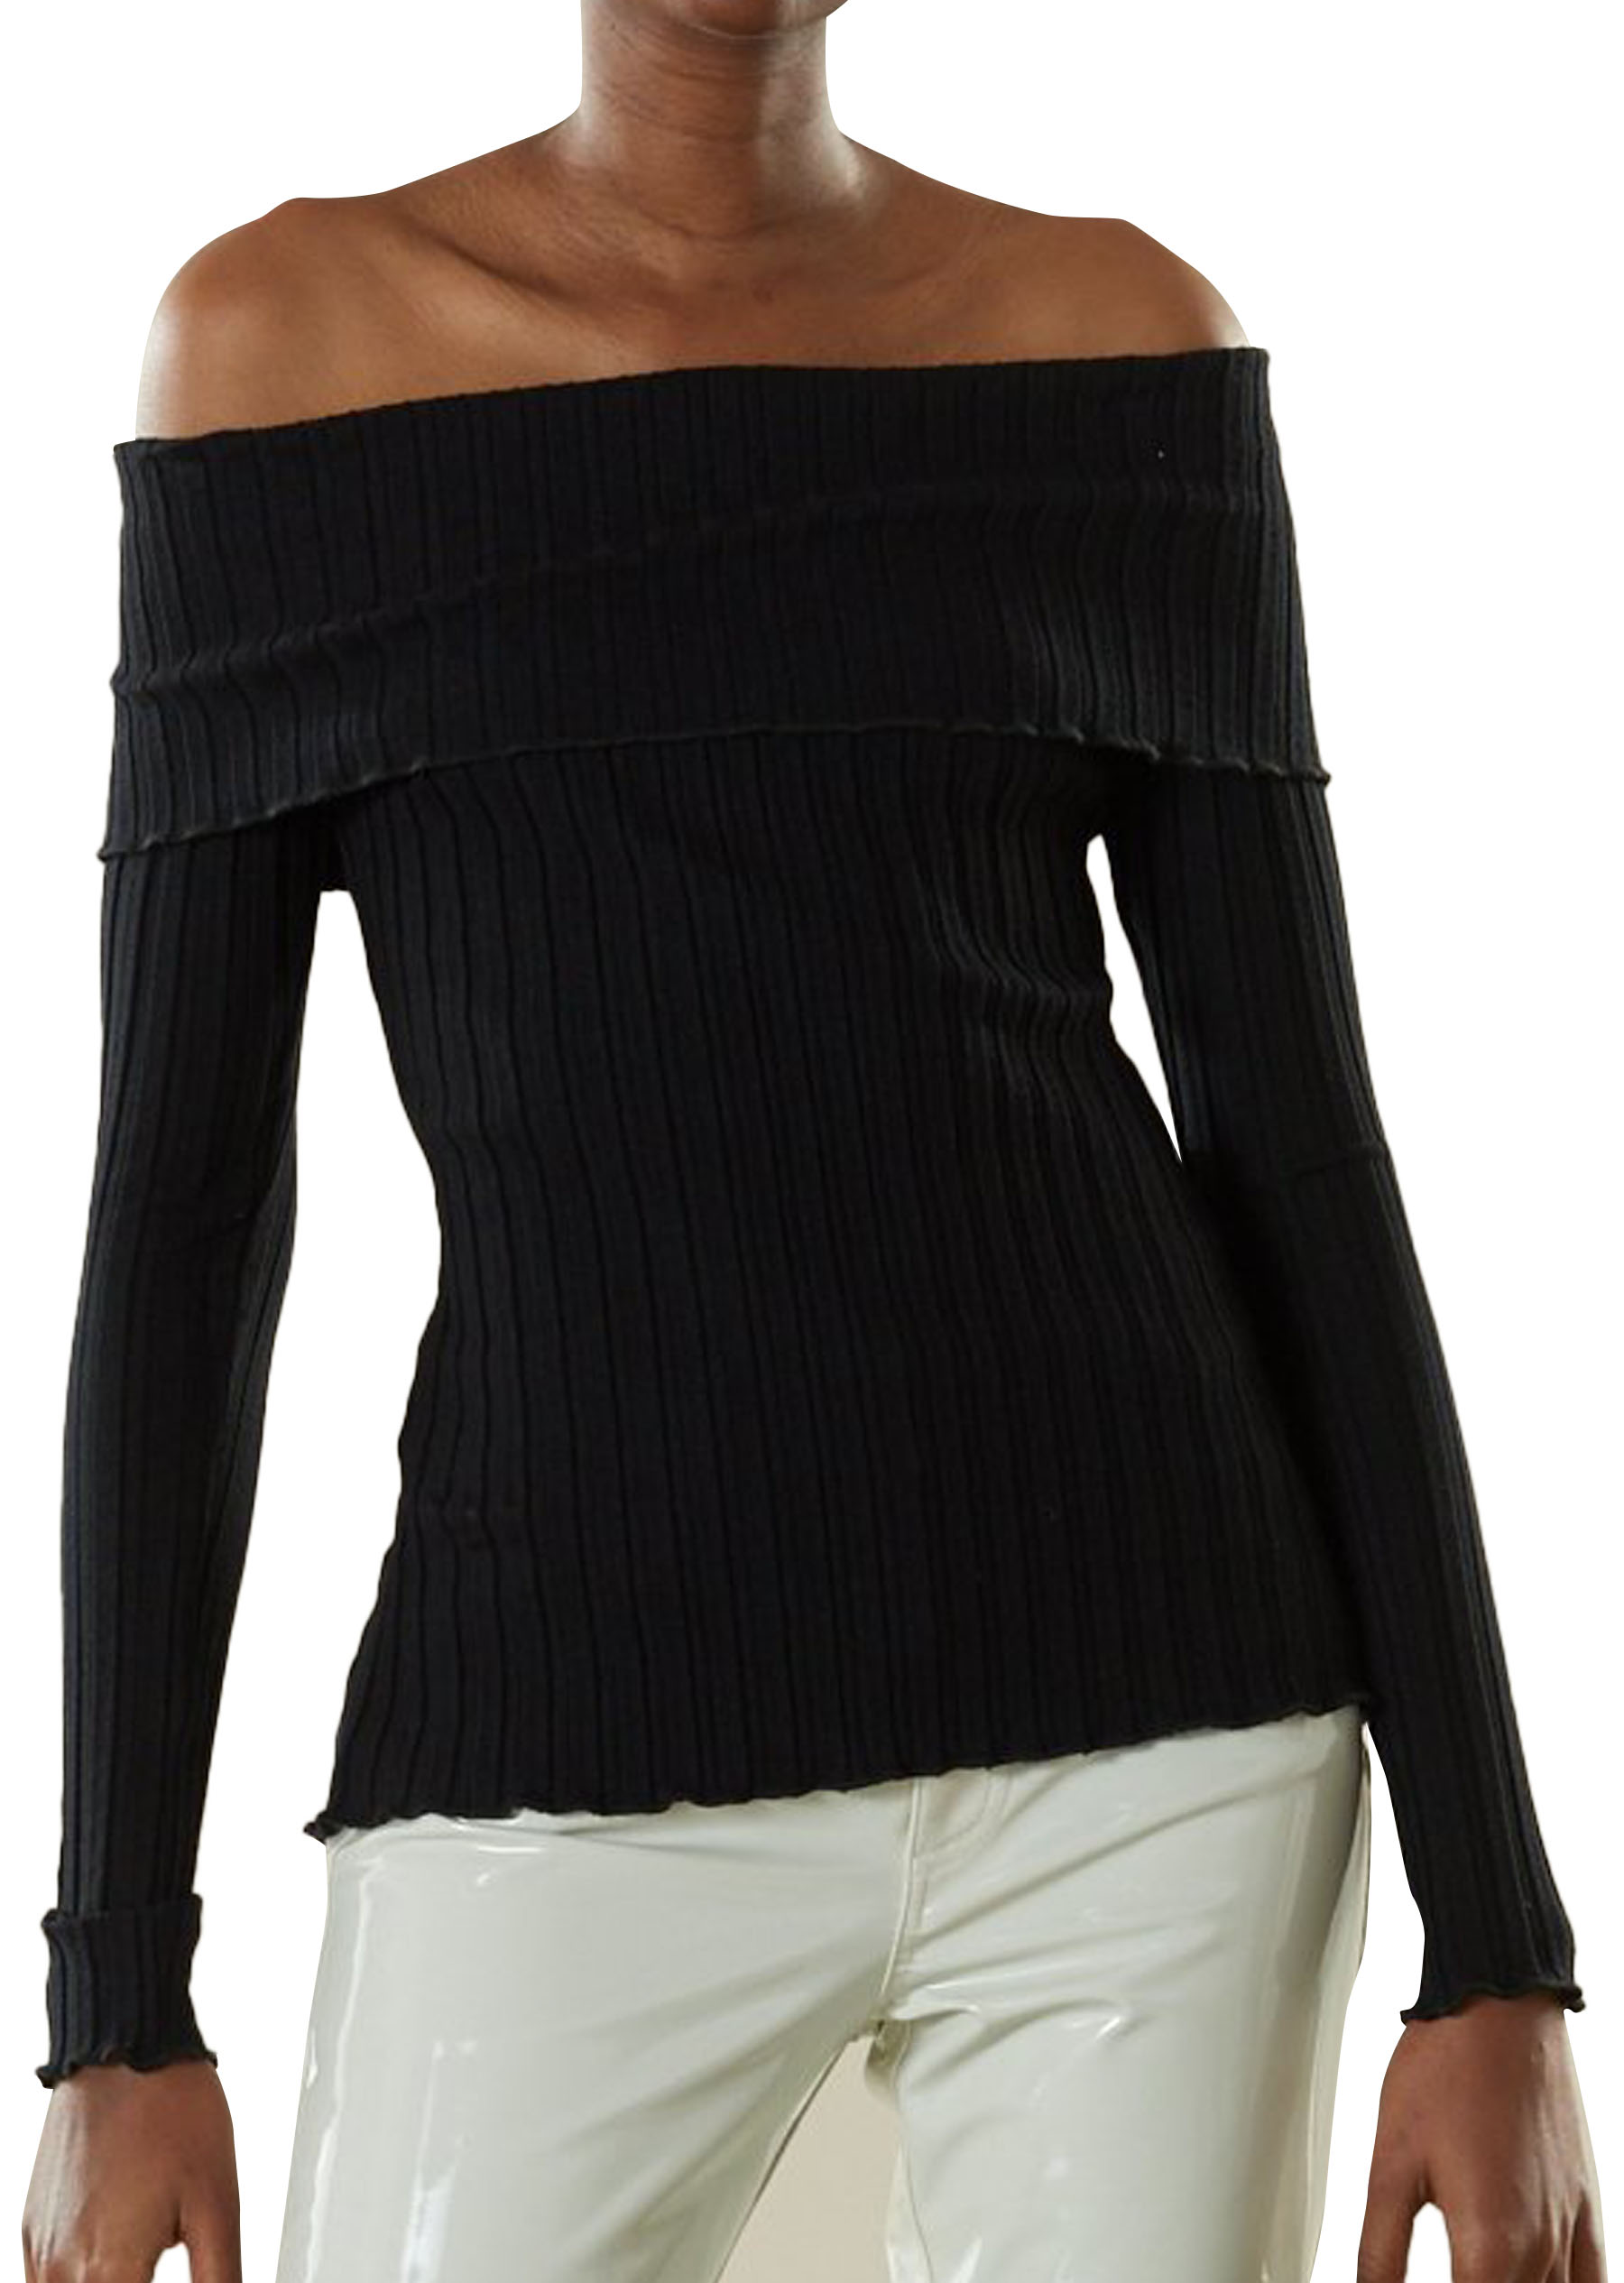 RIB Bauer Top in Black by Simon Miller - 1